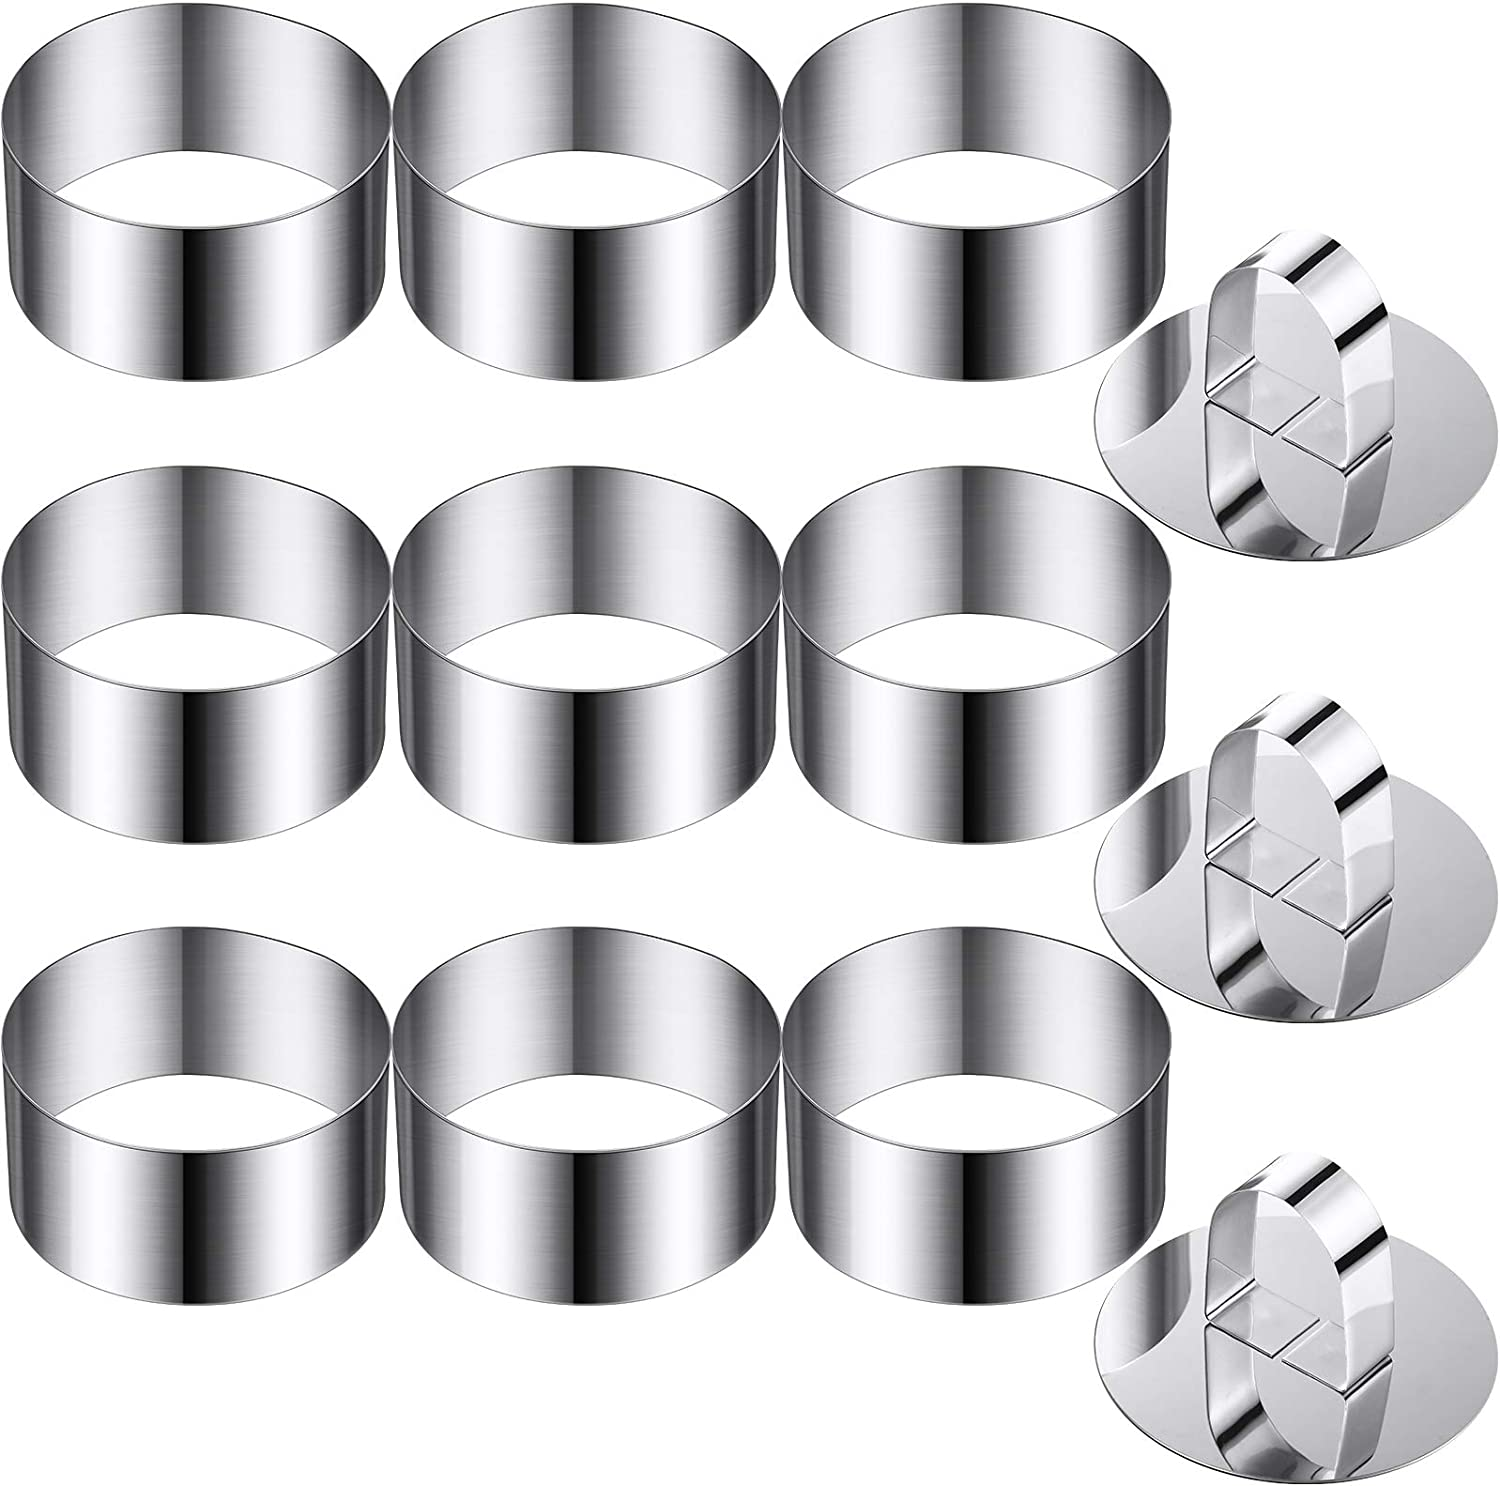 12 Pieces Round Cake Mold Stainless Steel Cake Mousse Mold Cake Ring Including 3 Pieces Pushers, 3.15 Inches Diameter